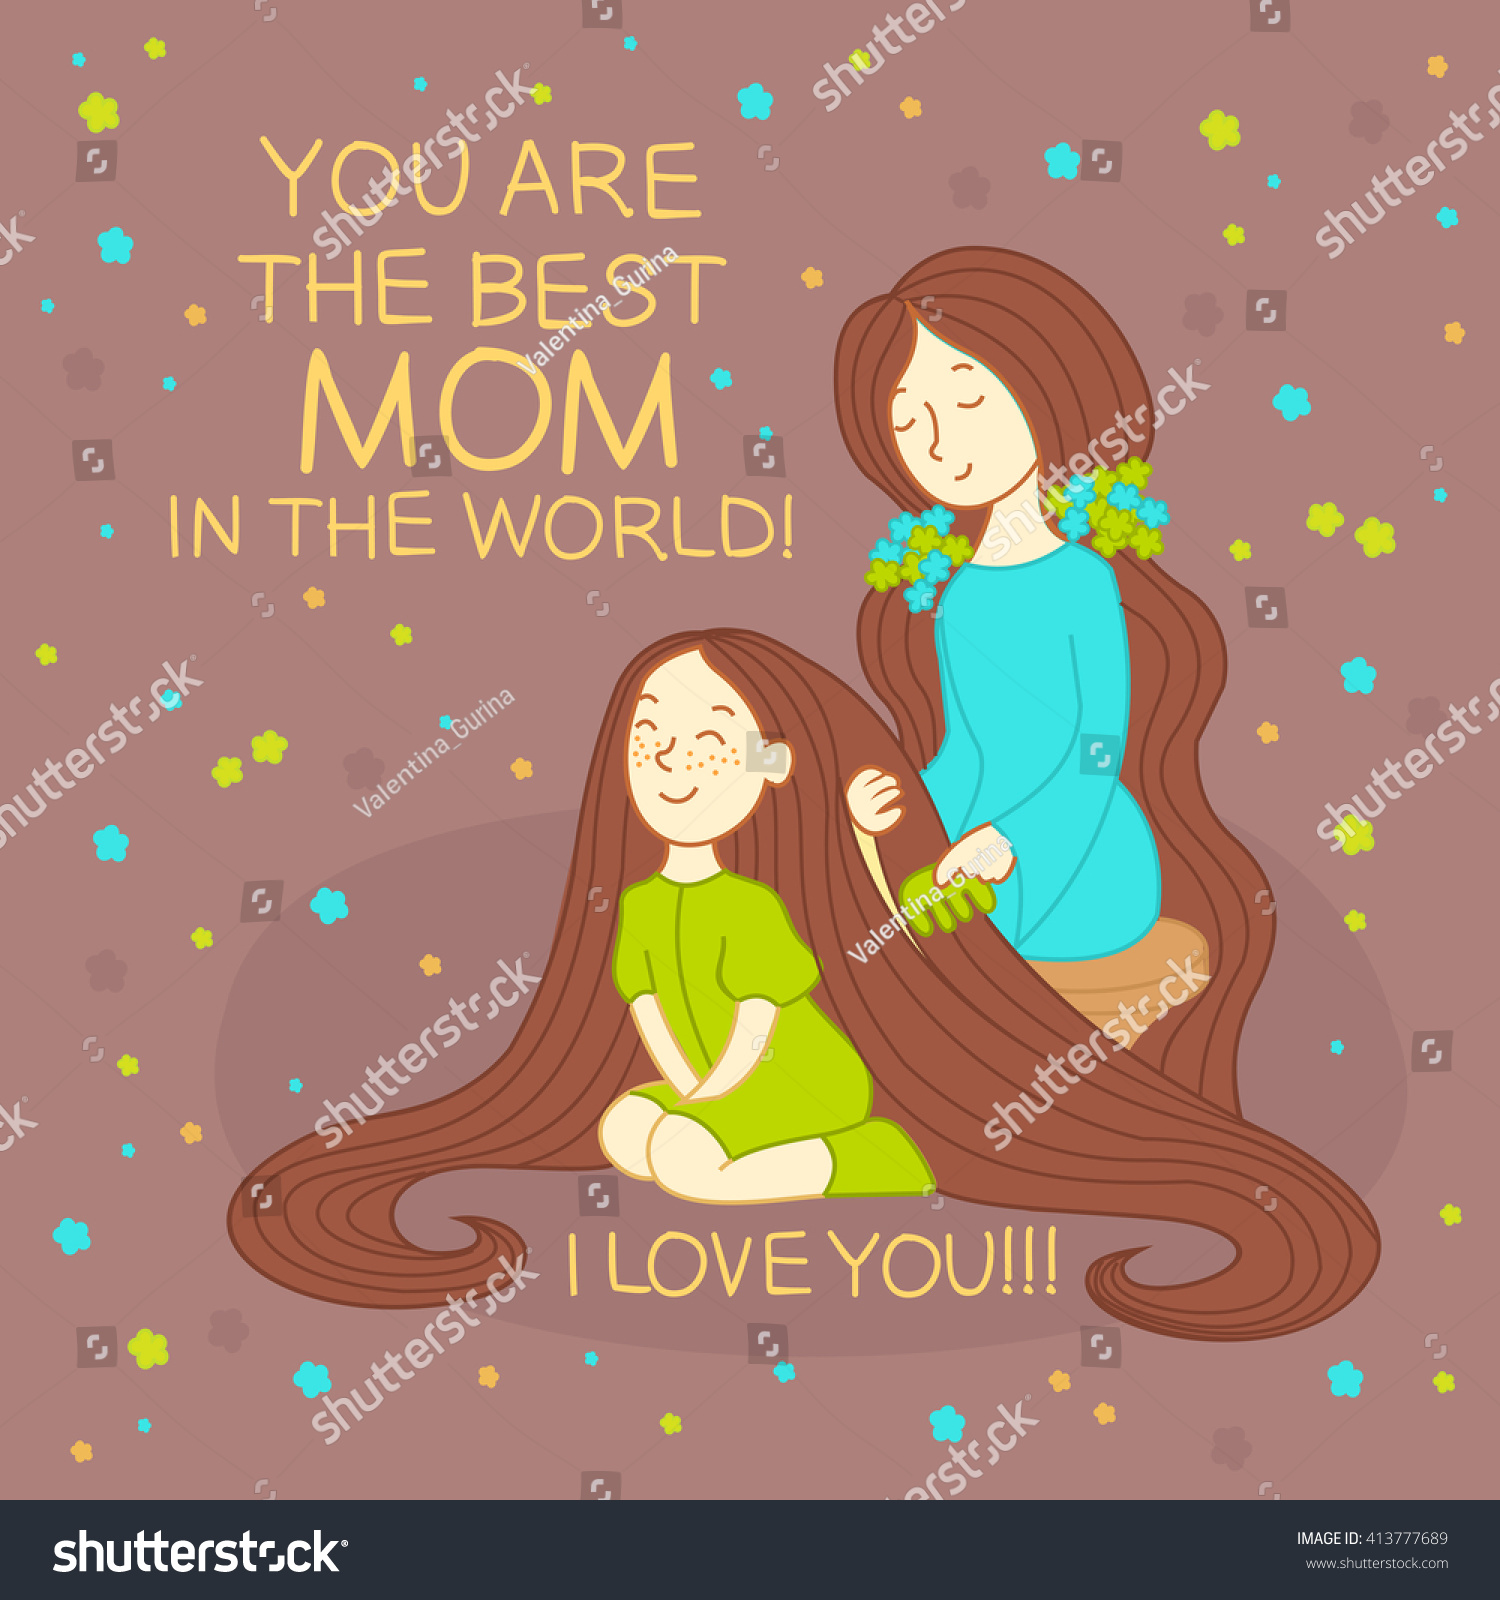 happy mothers day card mother with daughter card for mothers day line illustration